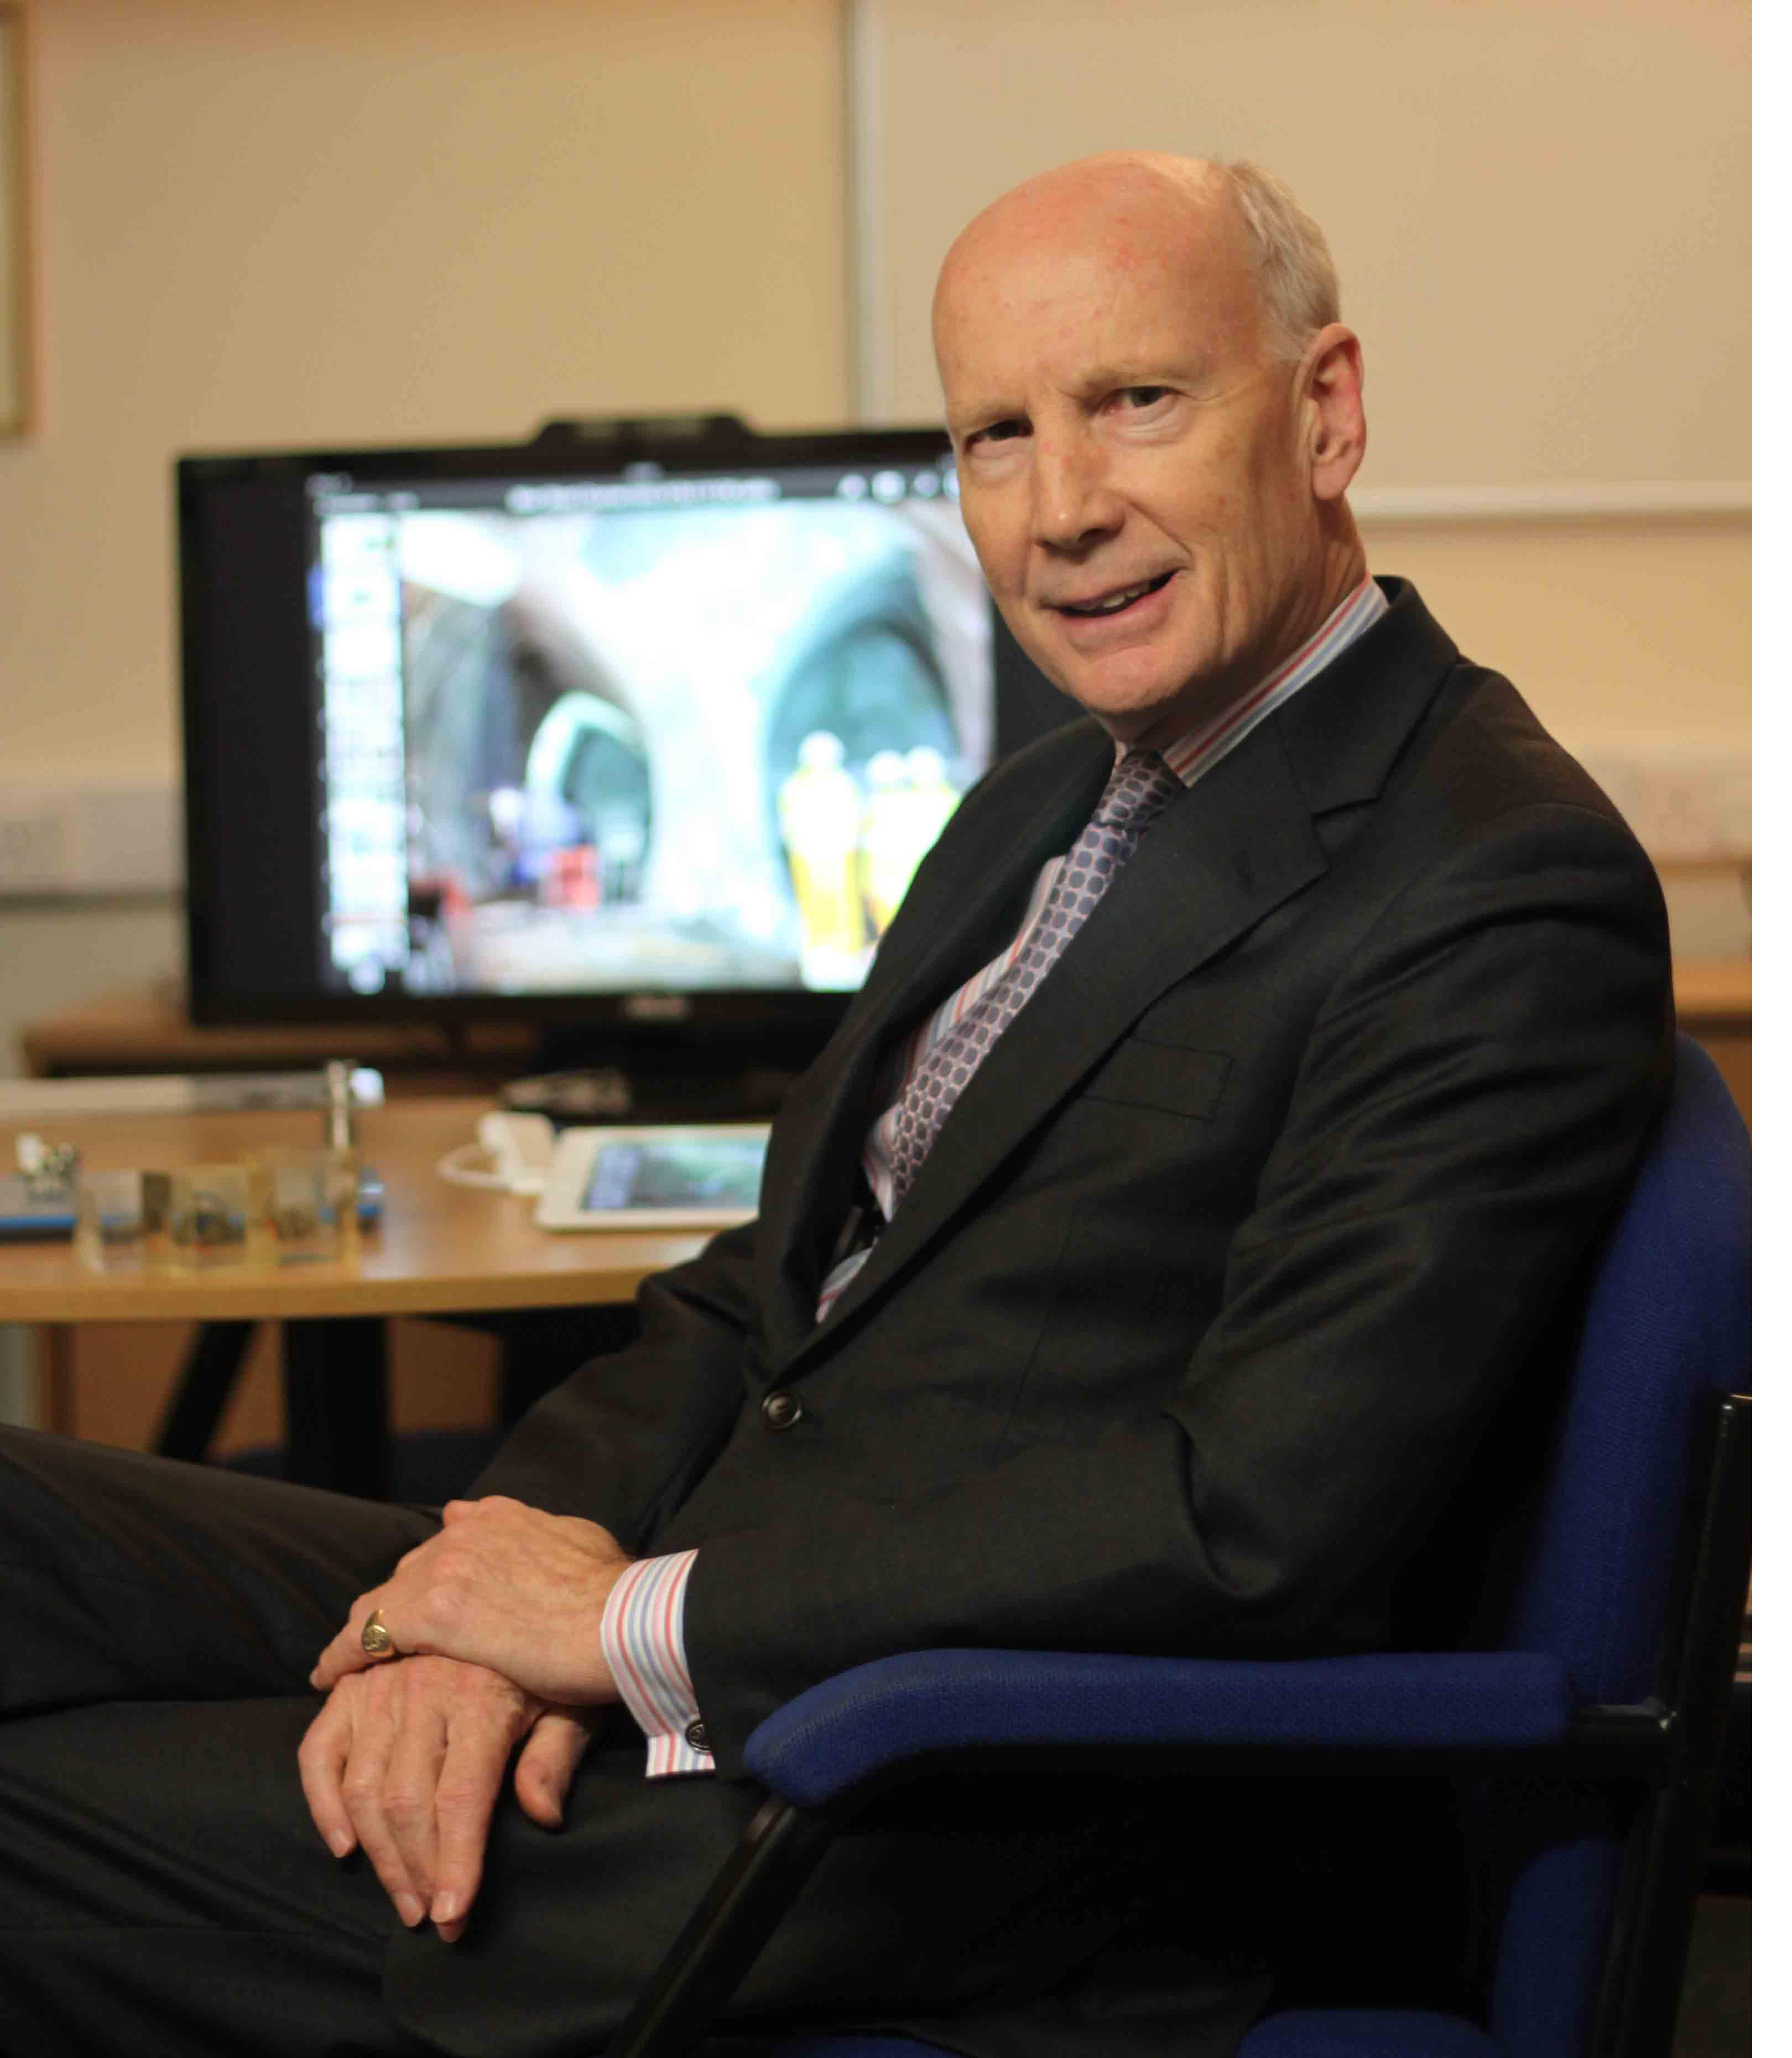 CSIC Head backs tunnelling as antidote to Cambridge congestion